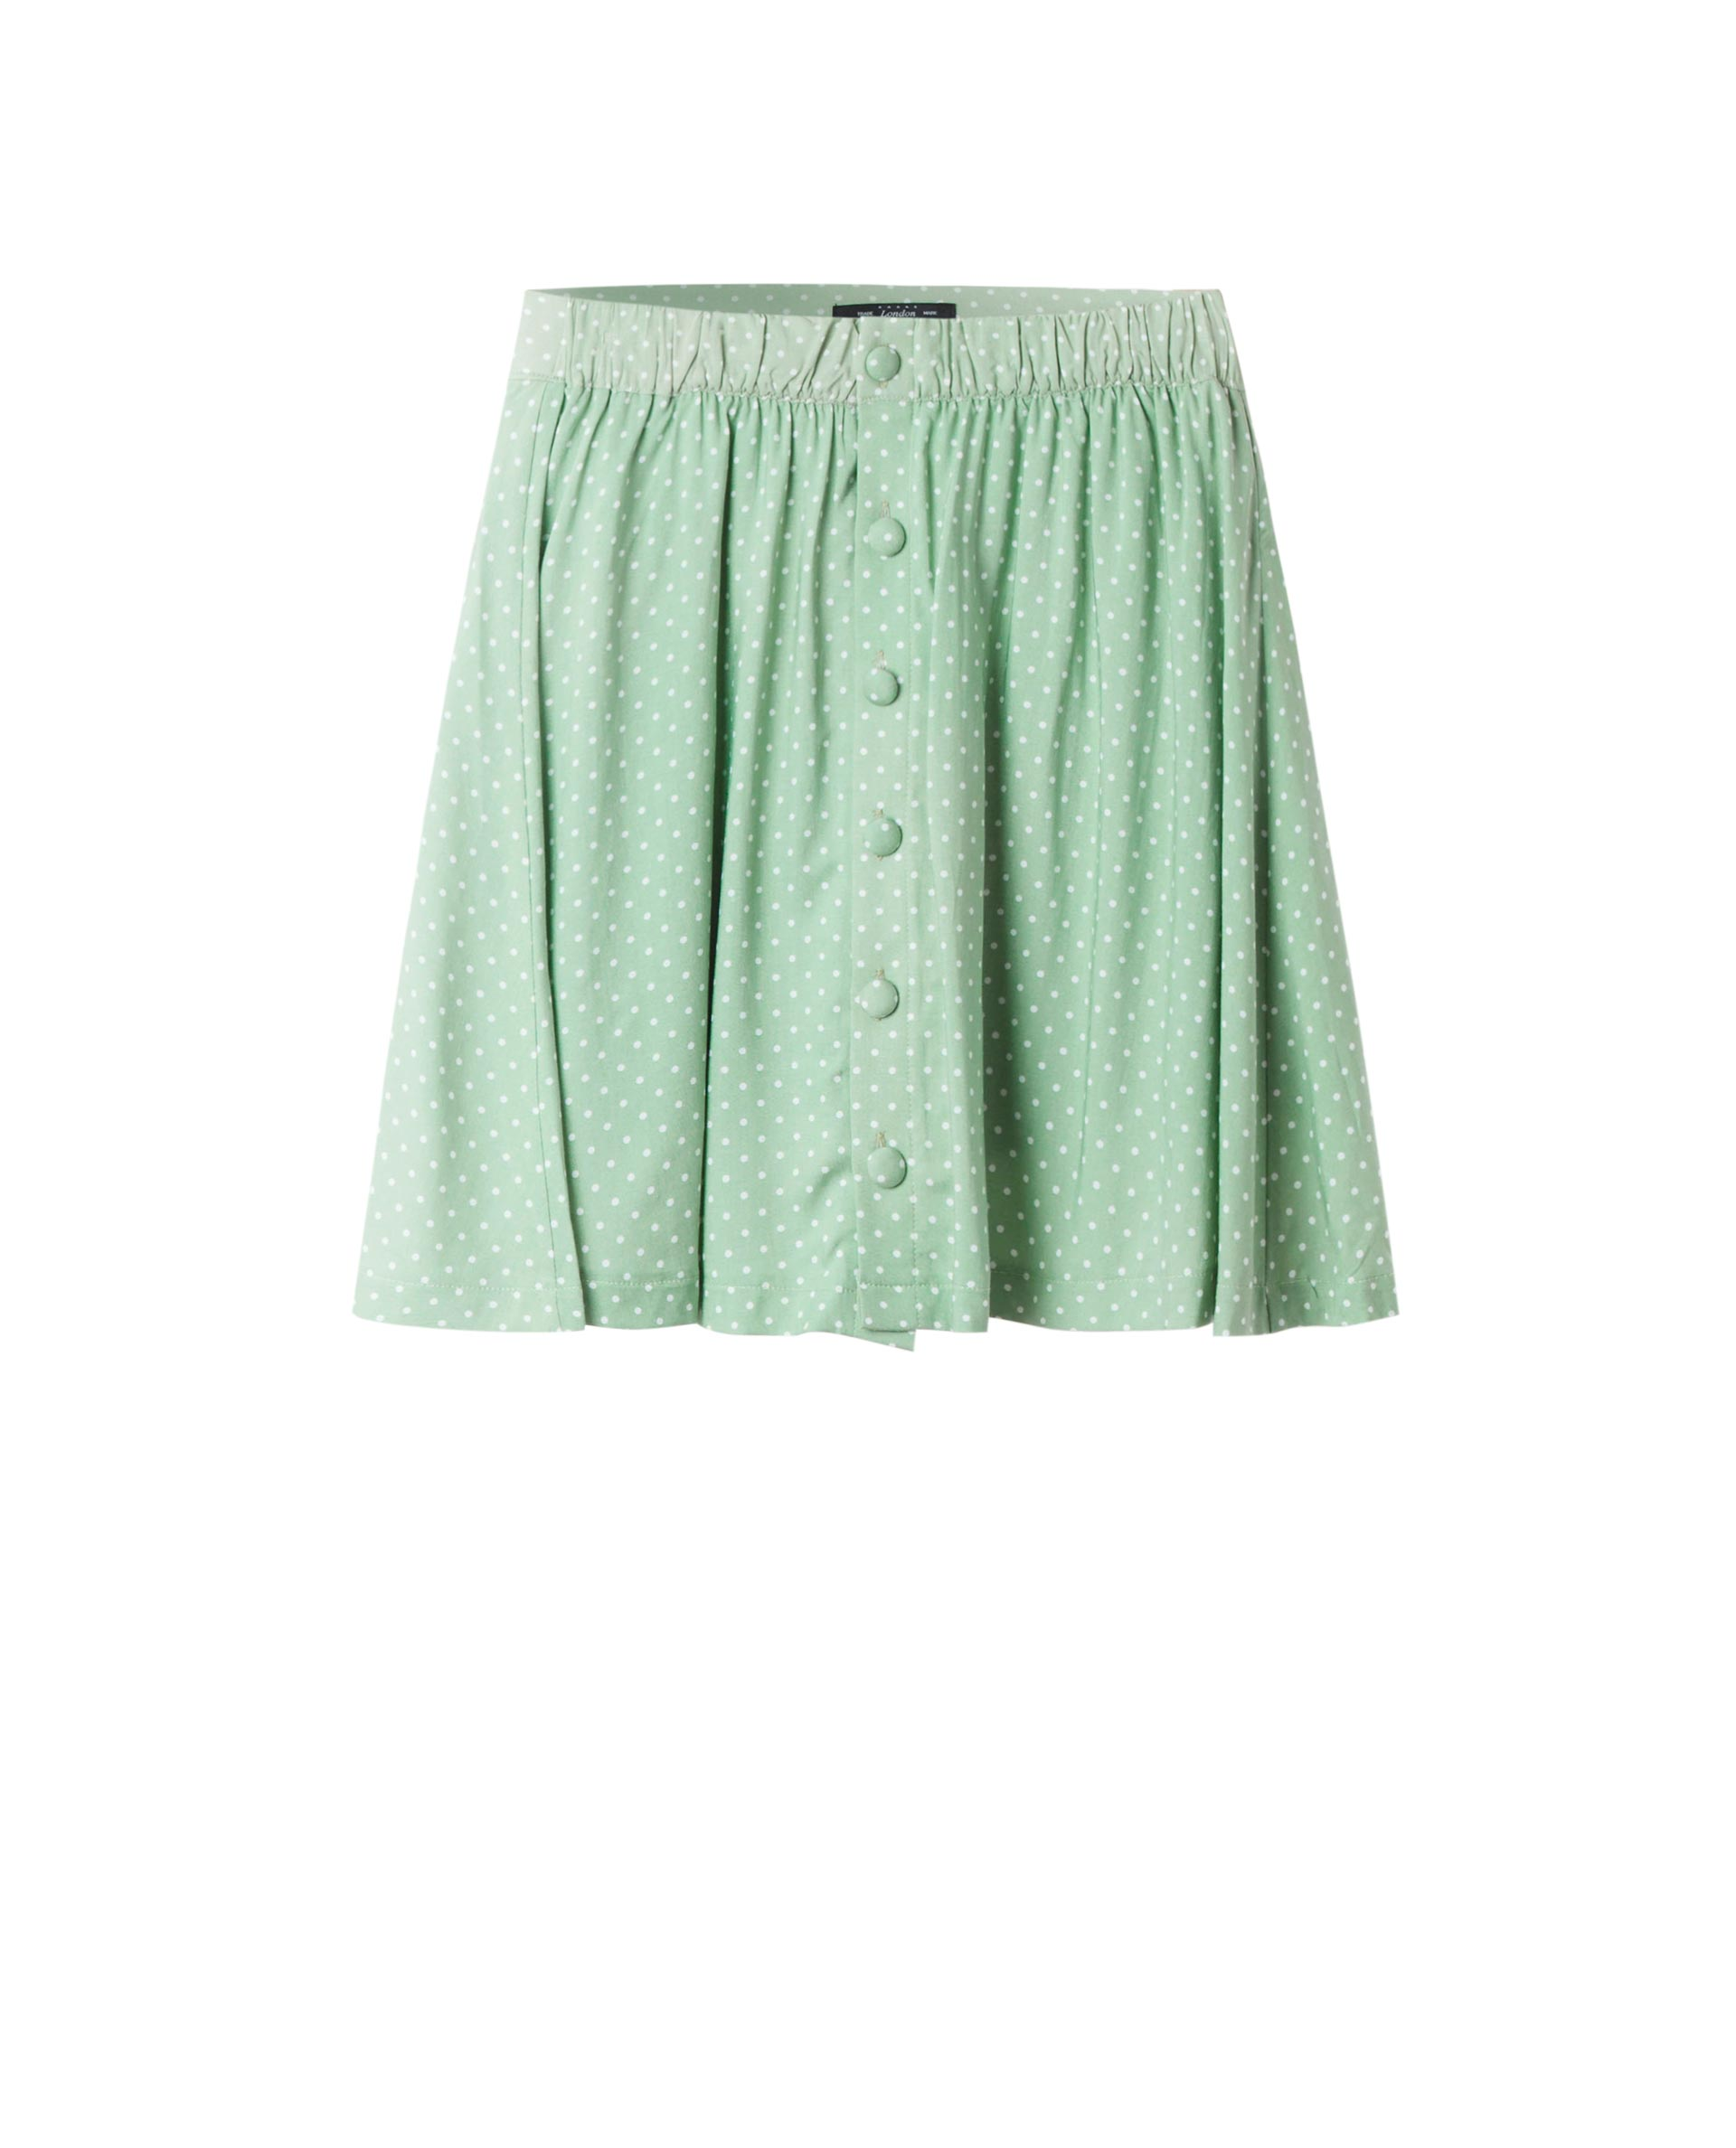 POLKA DOT SKIRT (MINT)